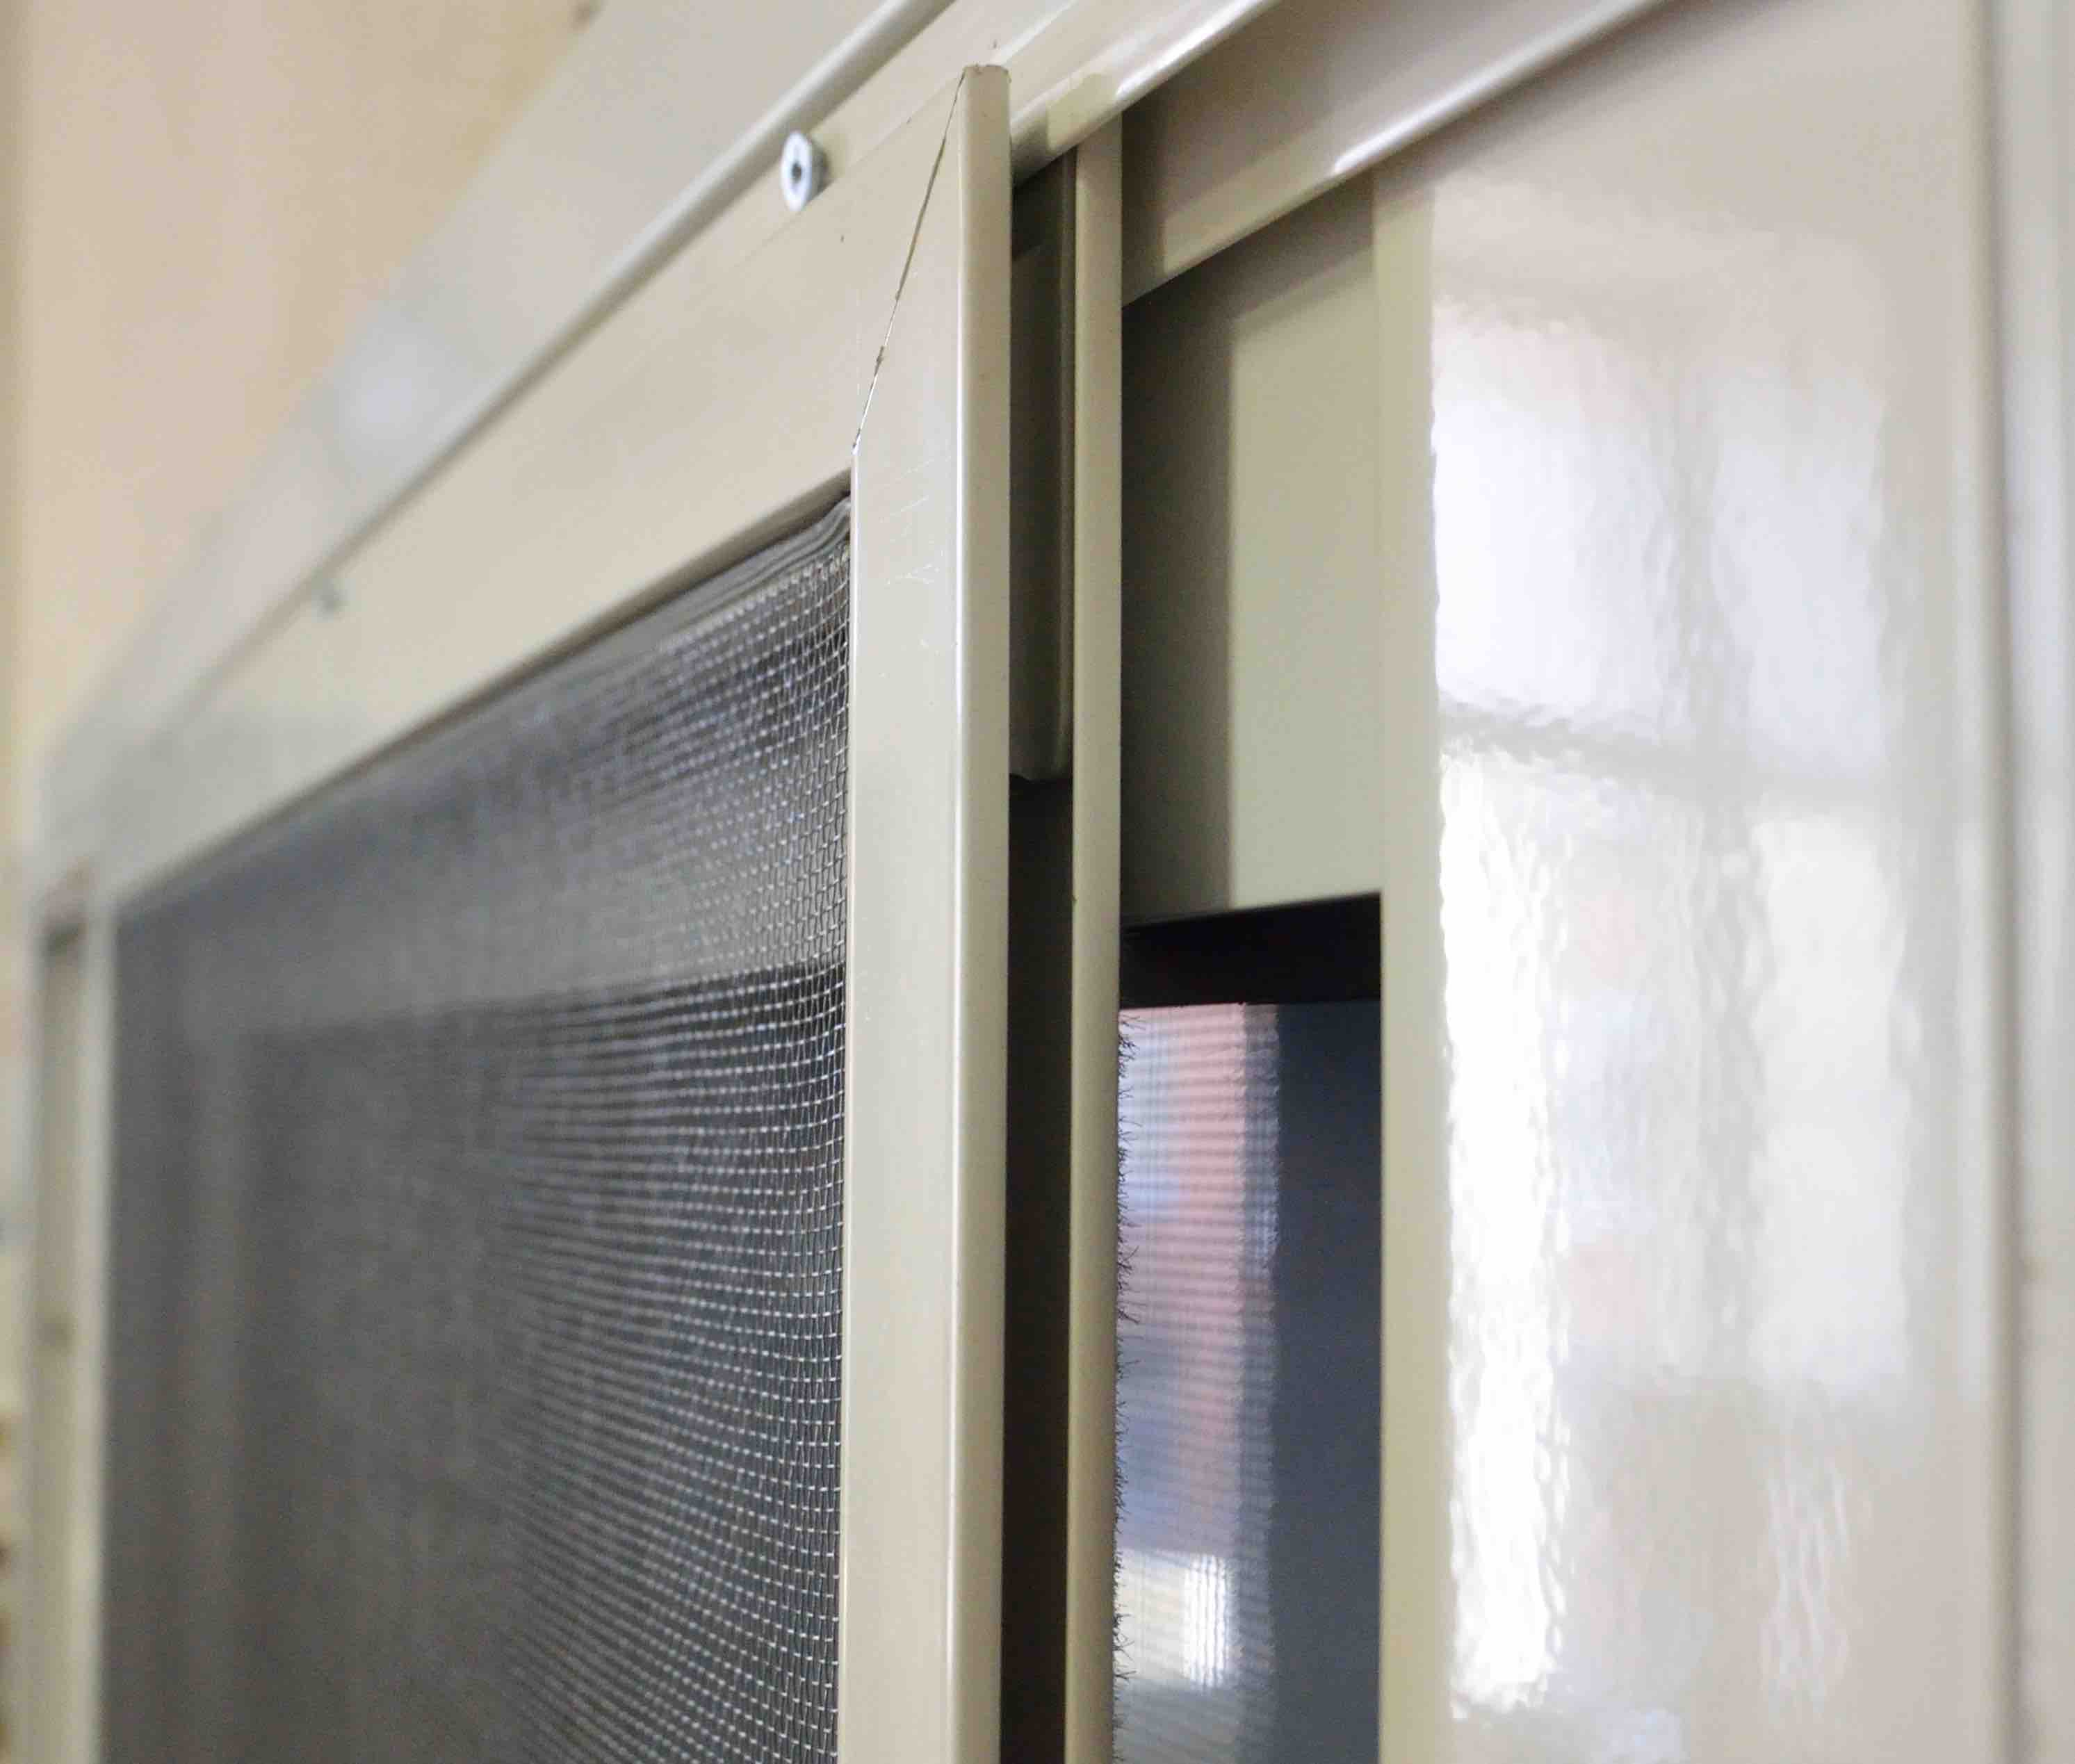 Window Screens And Door Screens Let Air In Keep Bugs Out